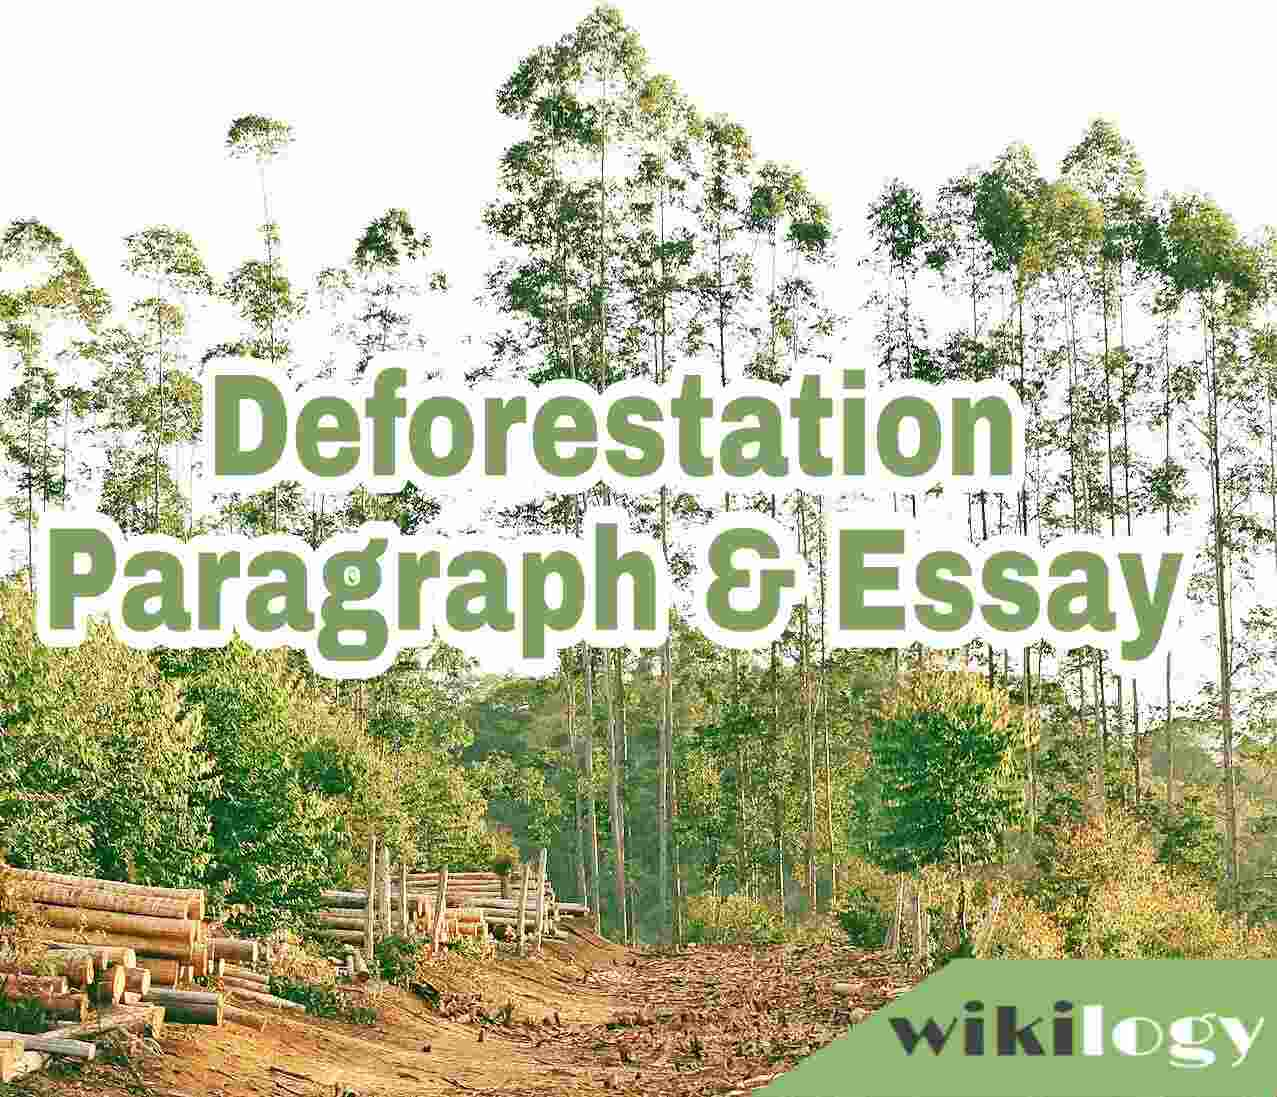 Deforestation Paragraph